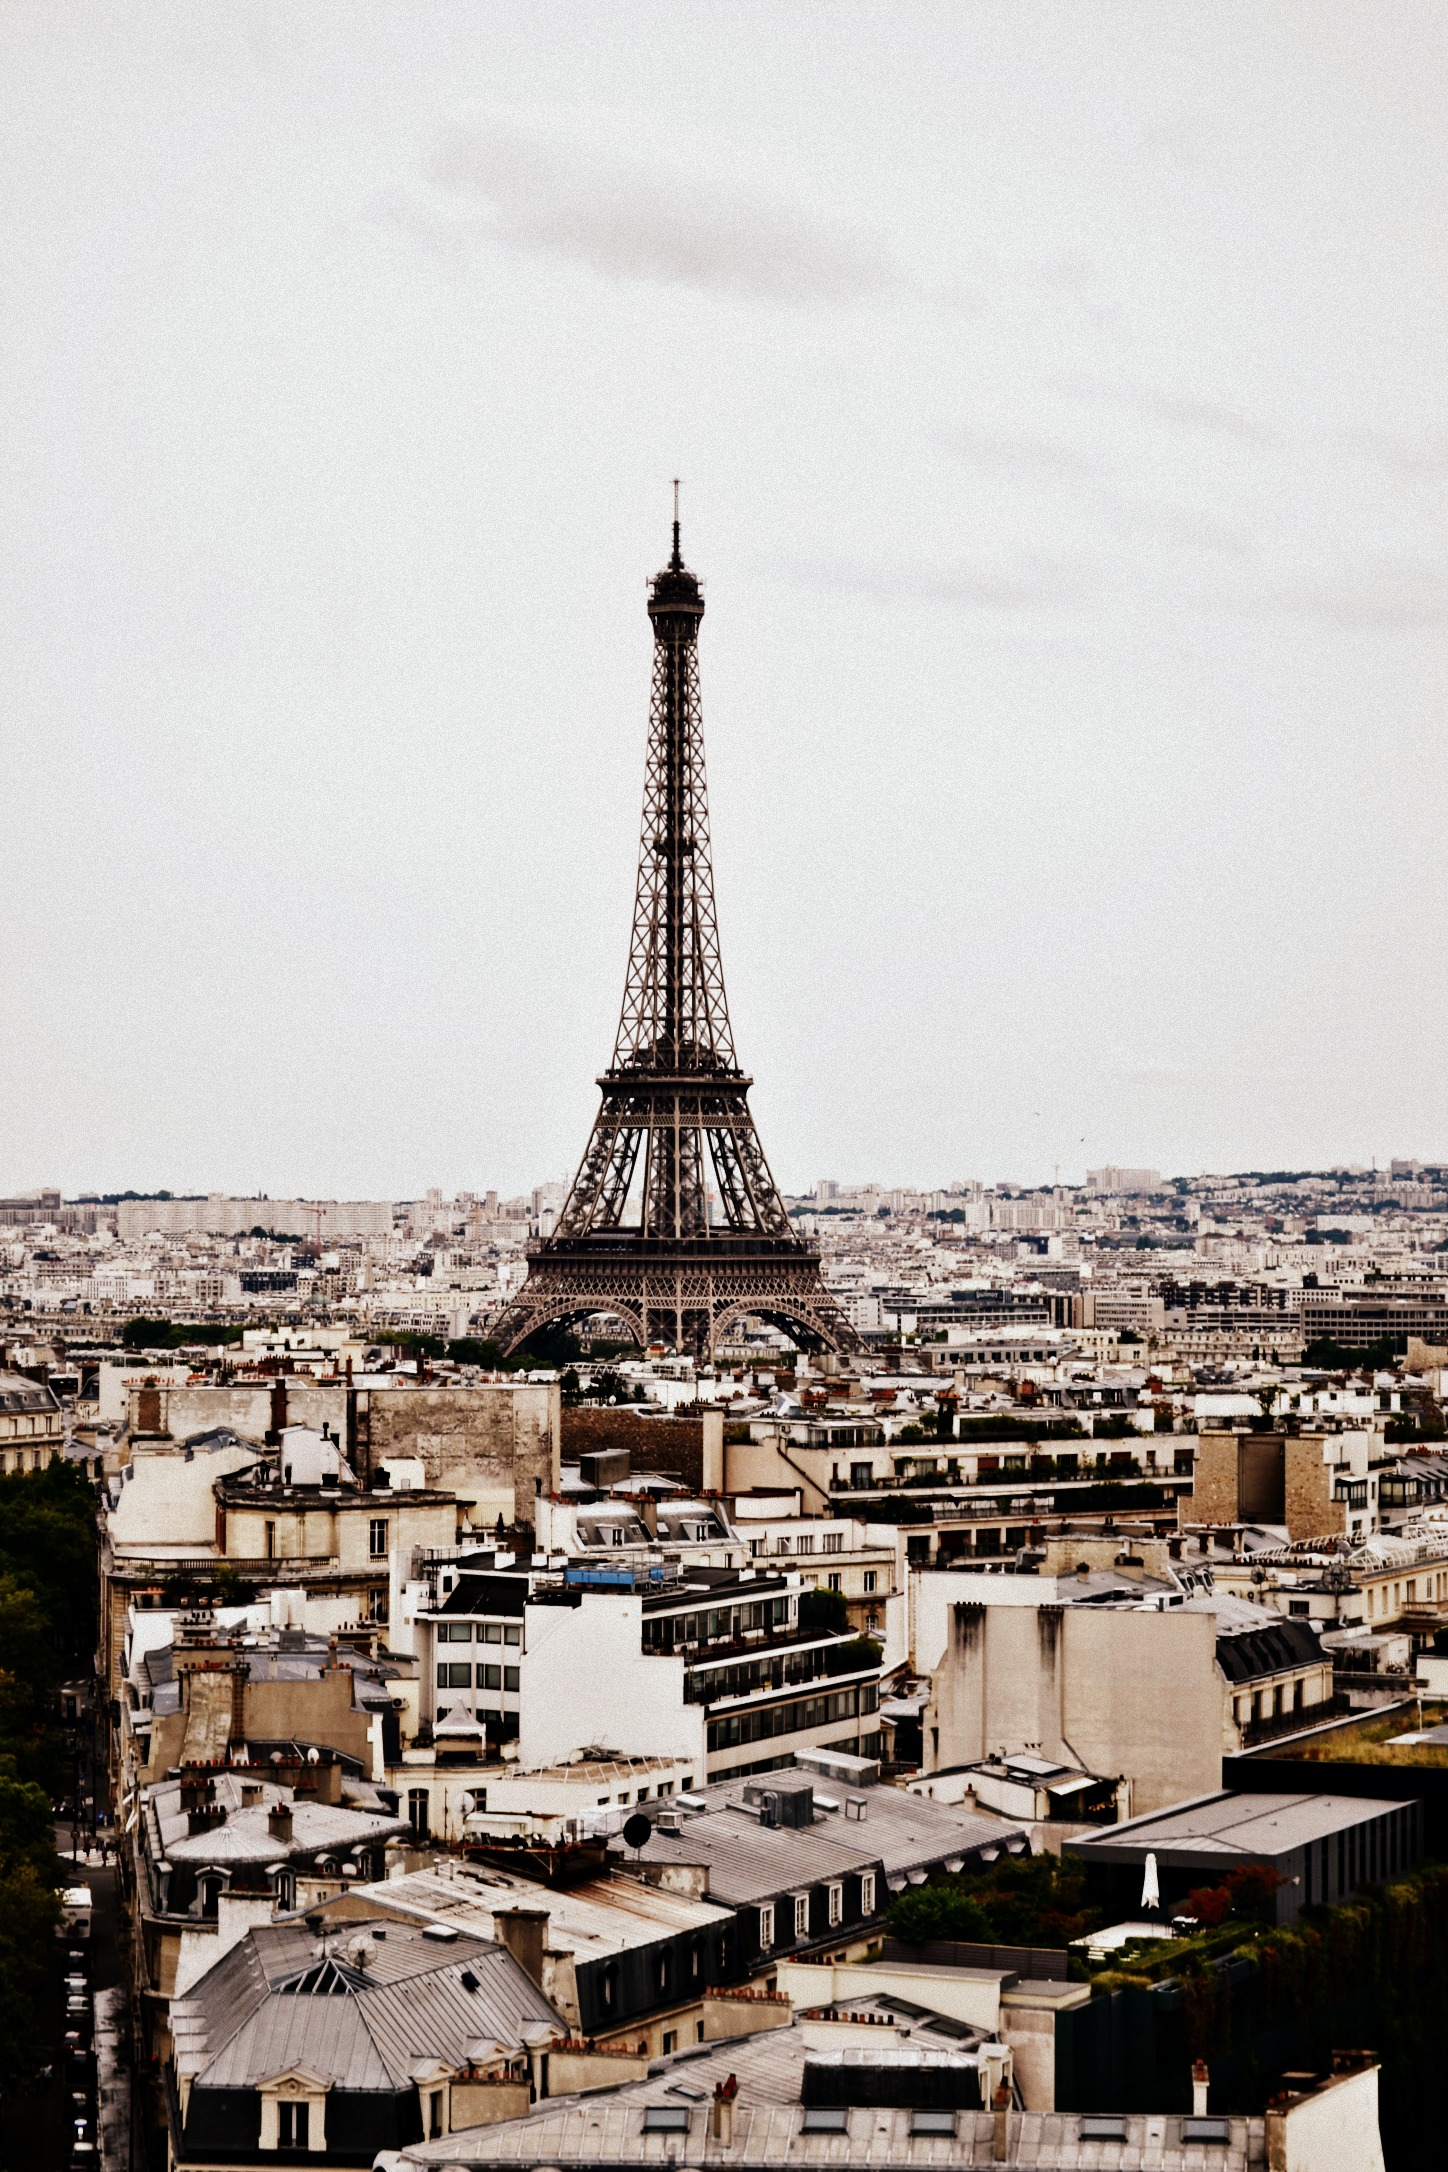 The Eiffel Tower itself